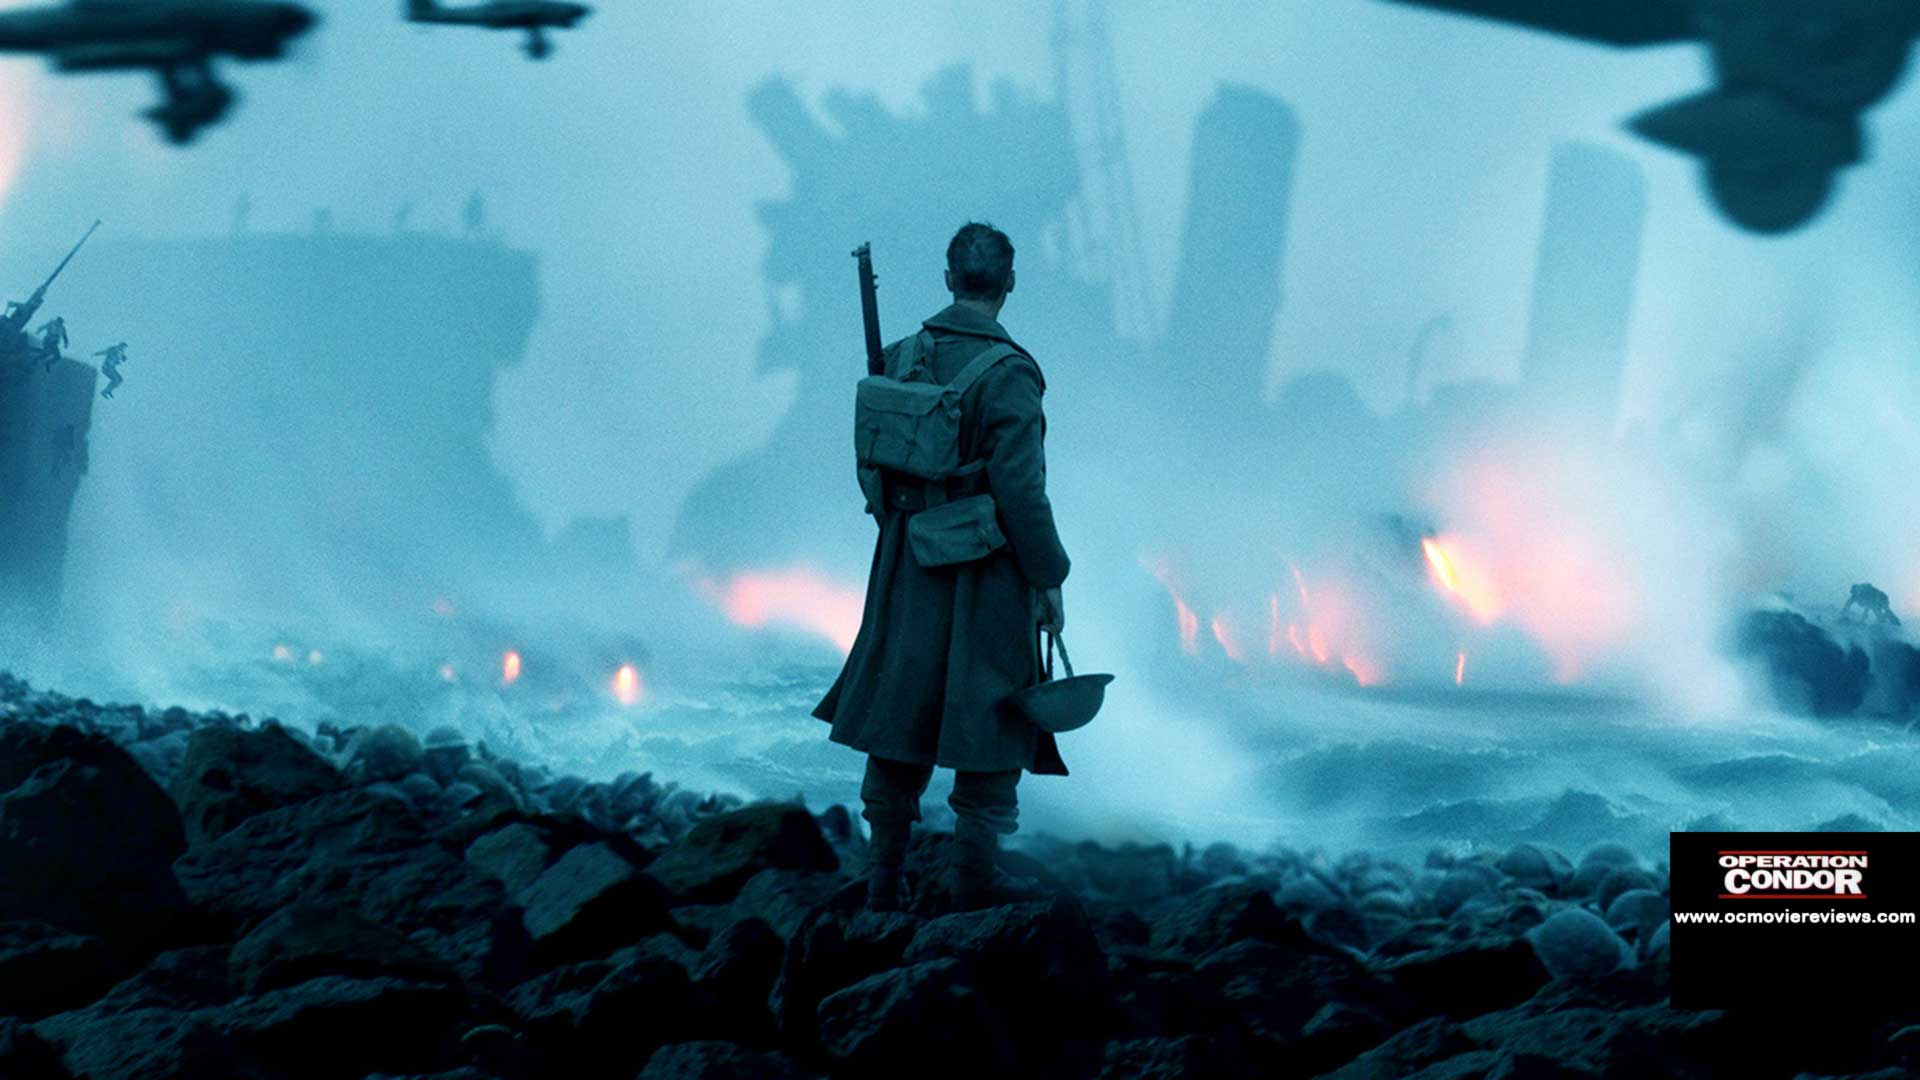 Dunkirk Review - OC Movie Reviews - Movie Reviews, Movie News, Documentary Reviews, Short Films, Short Film Reviews, Trailers, Movie Trailers, Interviews, film reviews, film news, hollywood, indie films, documentaries